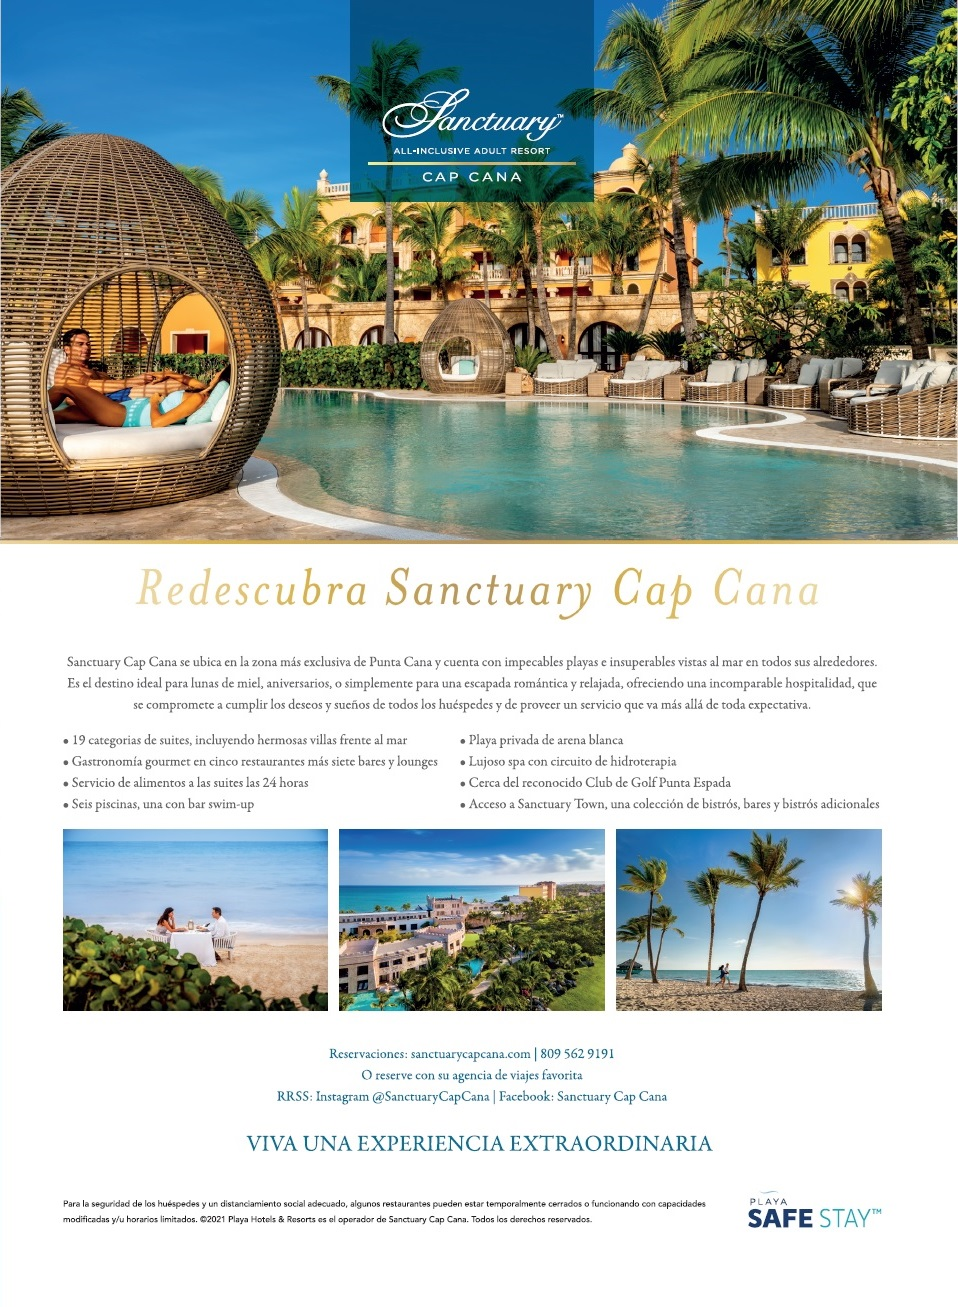 Sanctuary Cap Cana by Playa - Hotels & Resorts